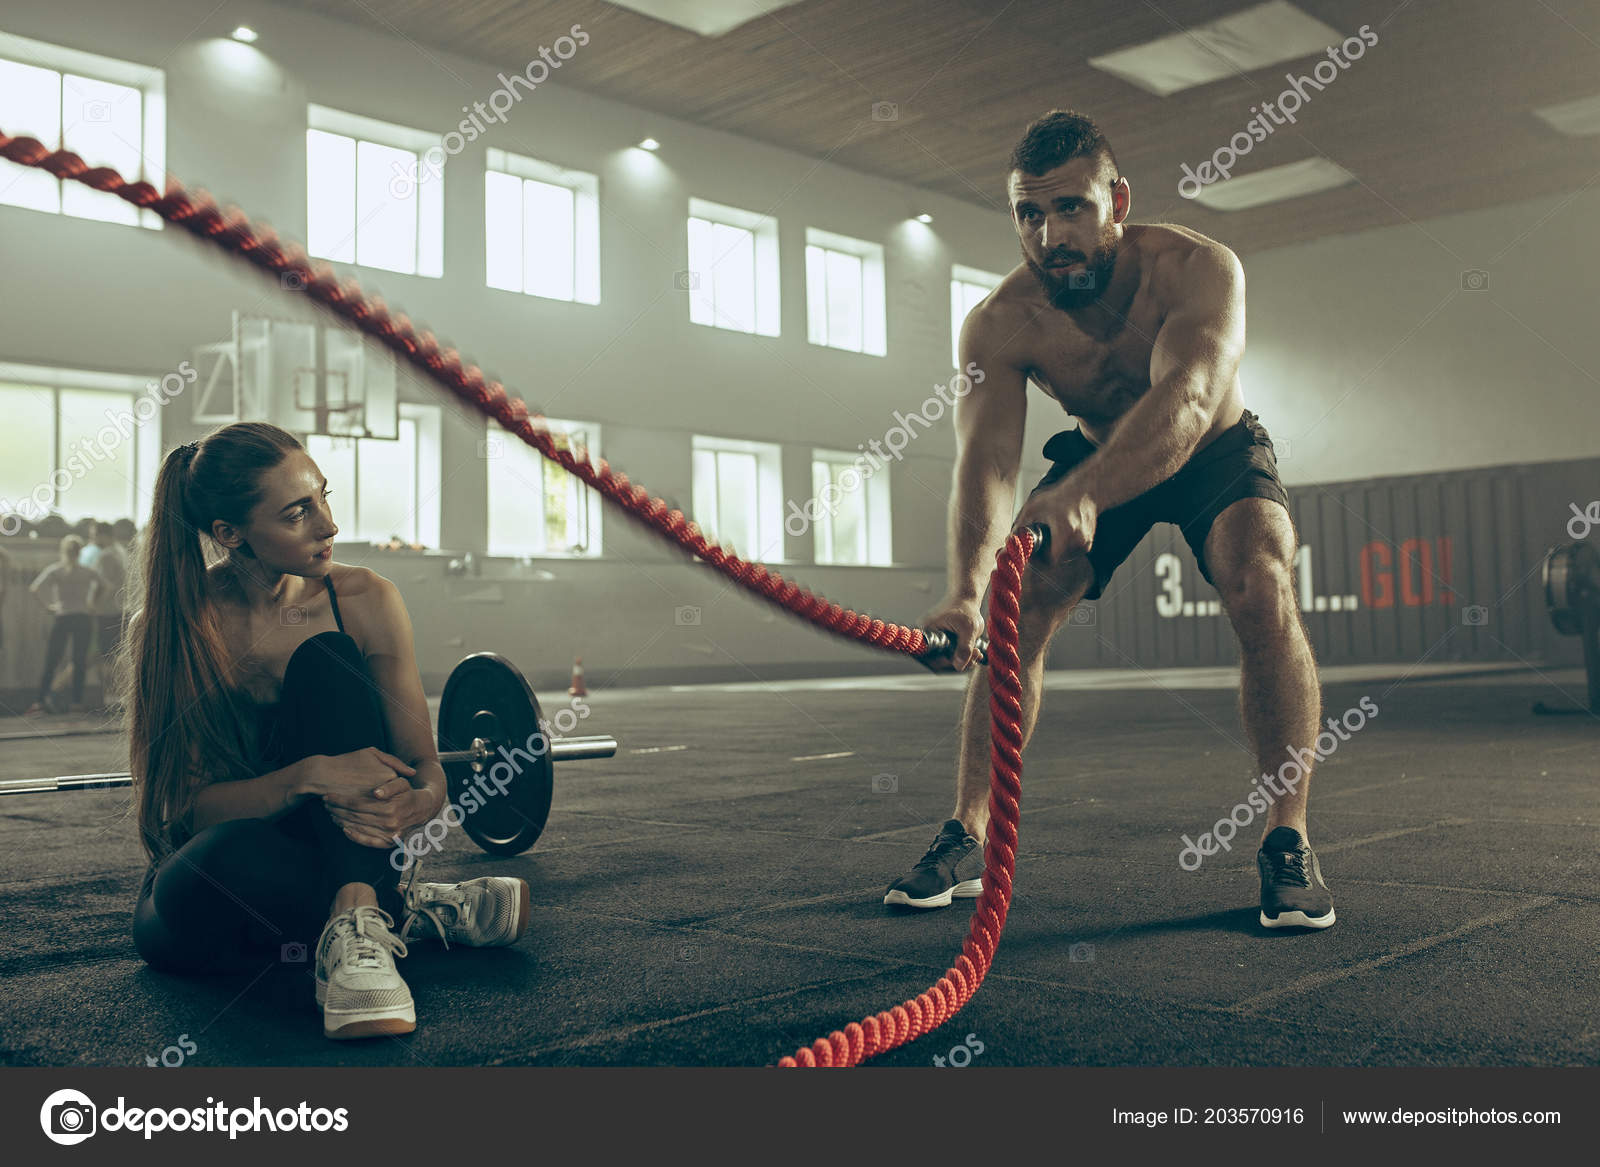 Men with battle rope battle ropes exercise in the fitness